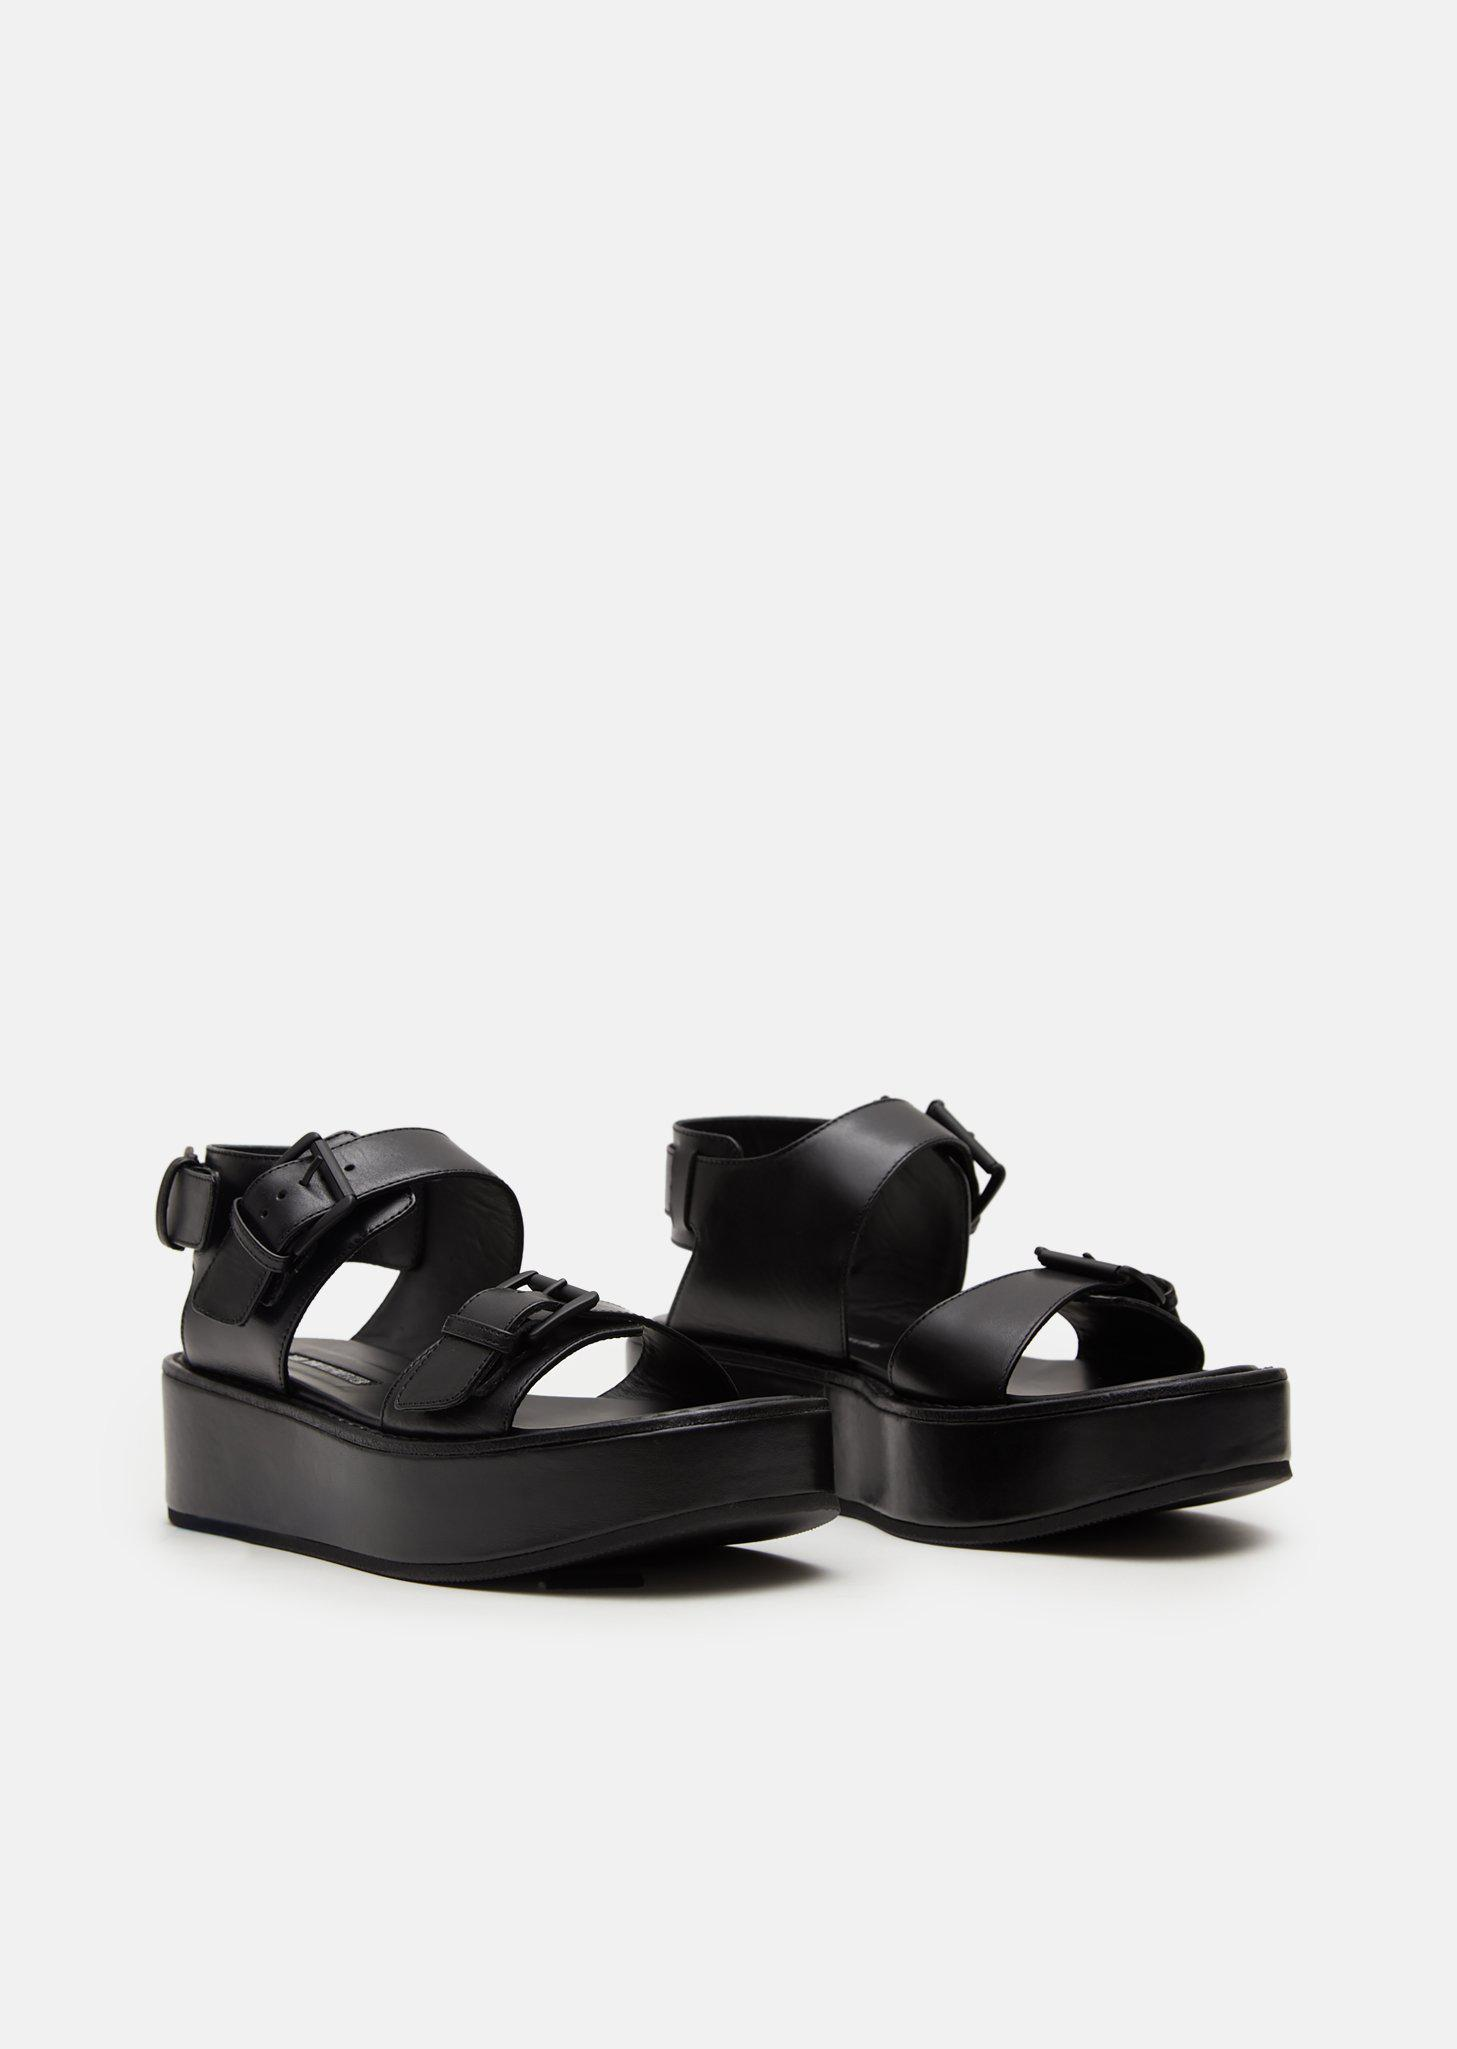 Black Leather Platform Sandals Ann Demeulemeester R2GcX0UsE